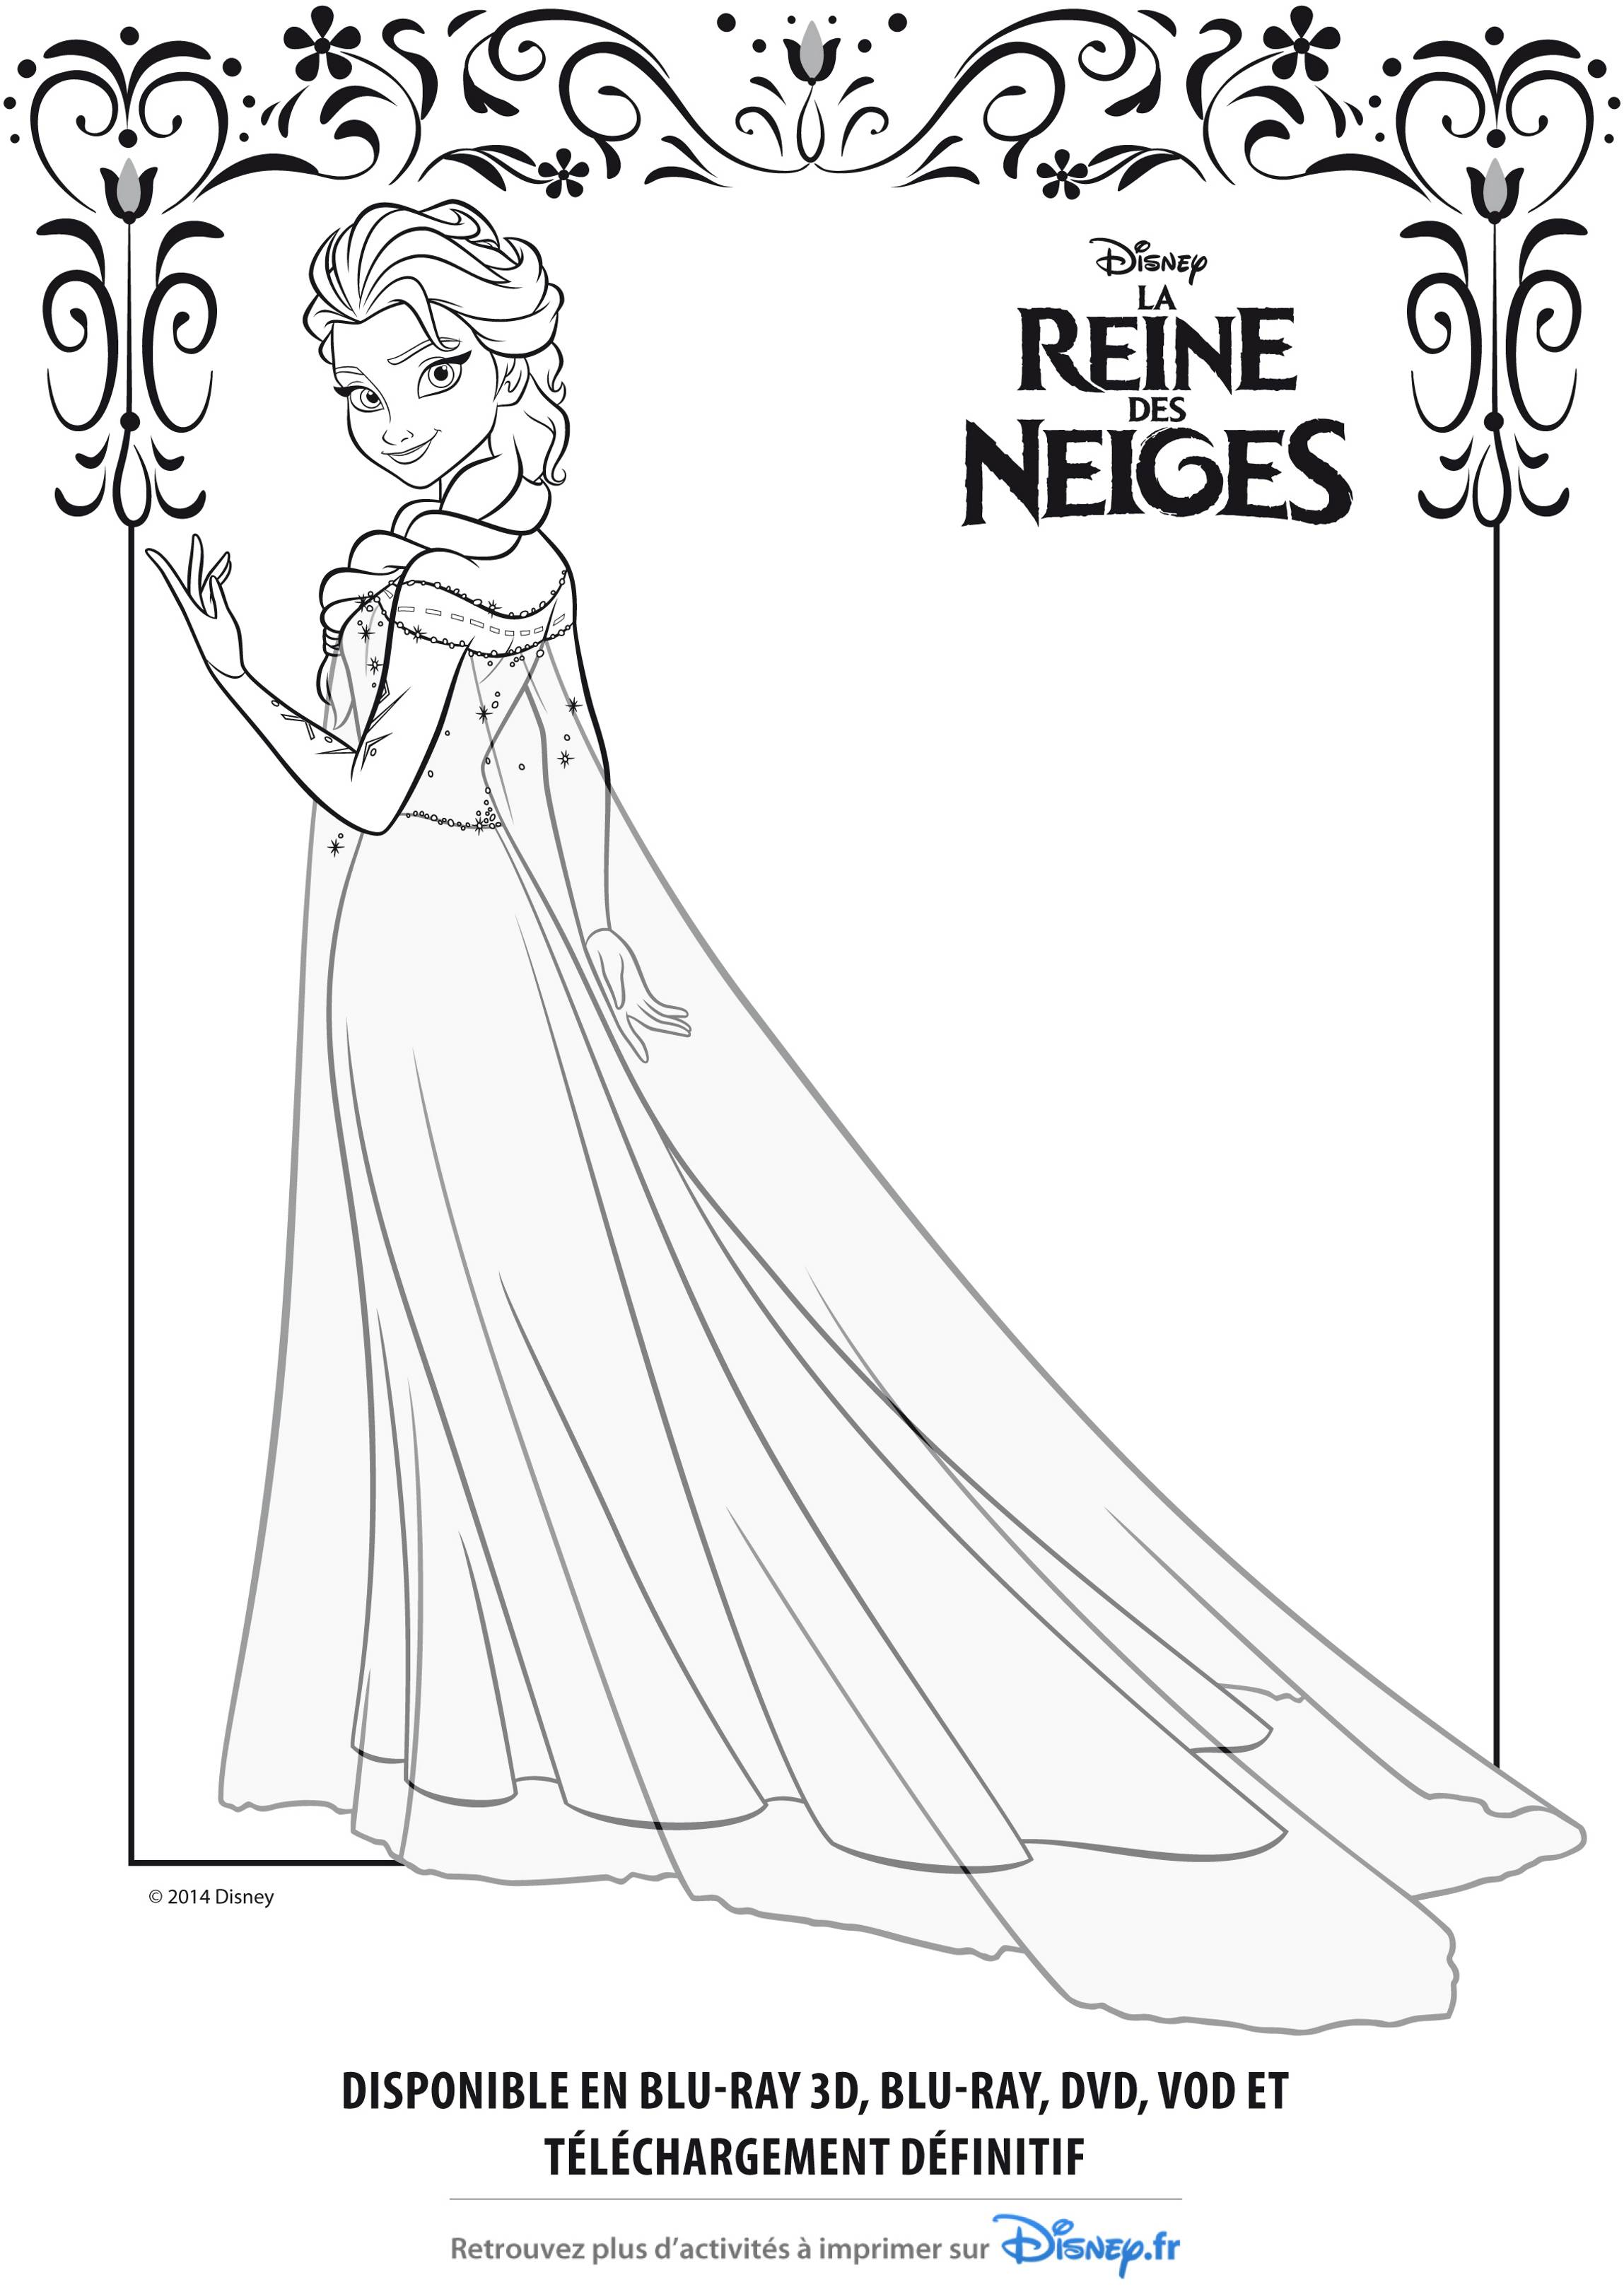 Image De Elsa La Reine Des Neiges A Telecharger Et Colorier